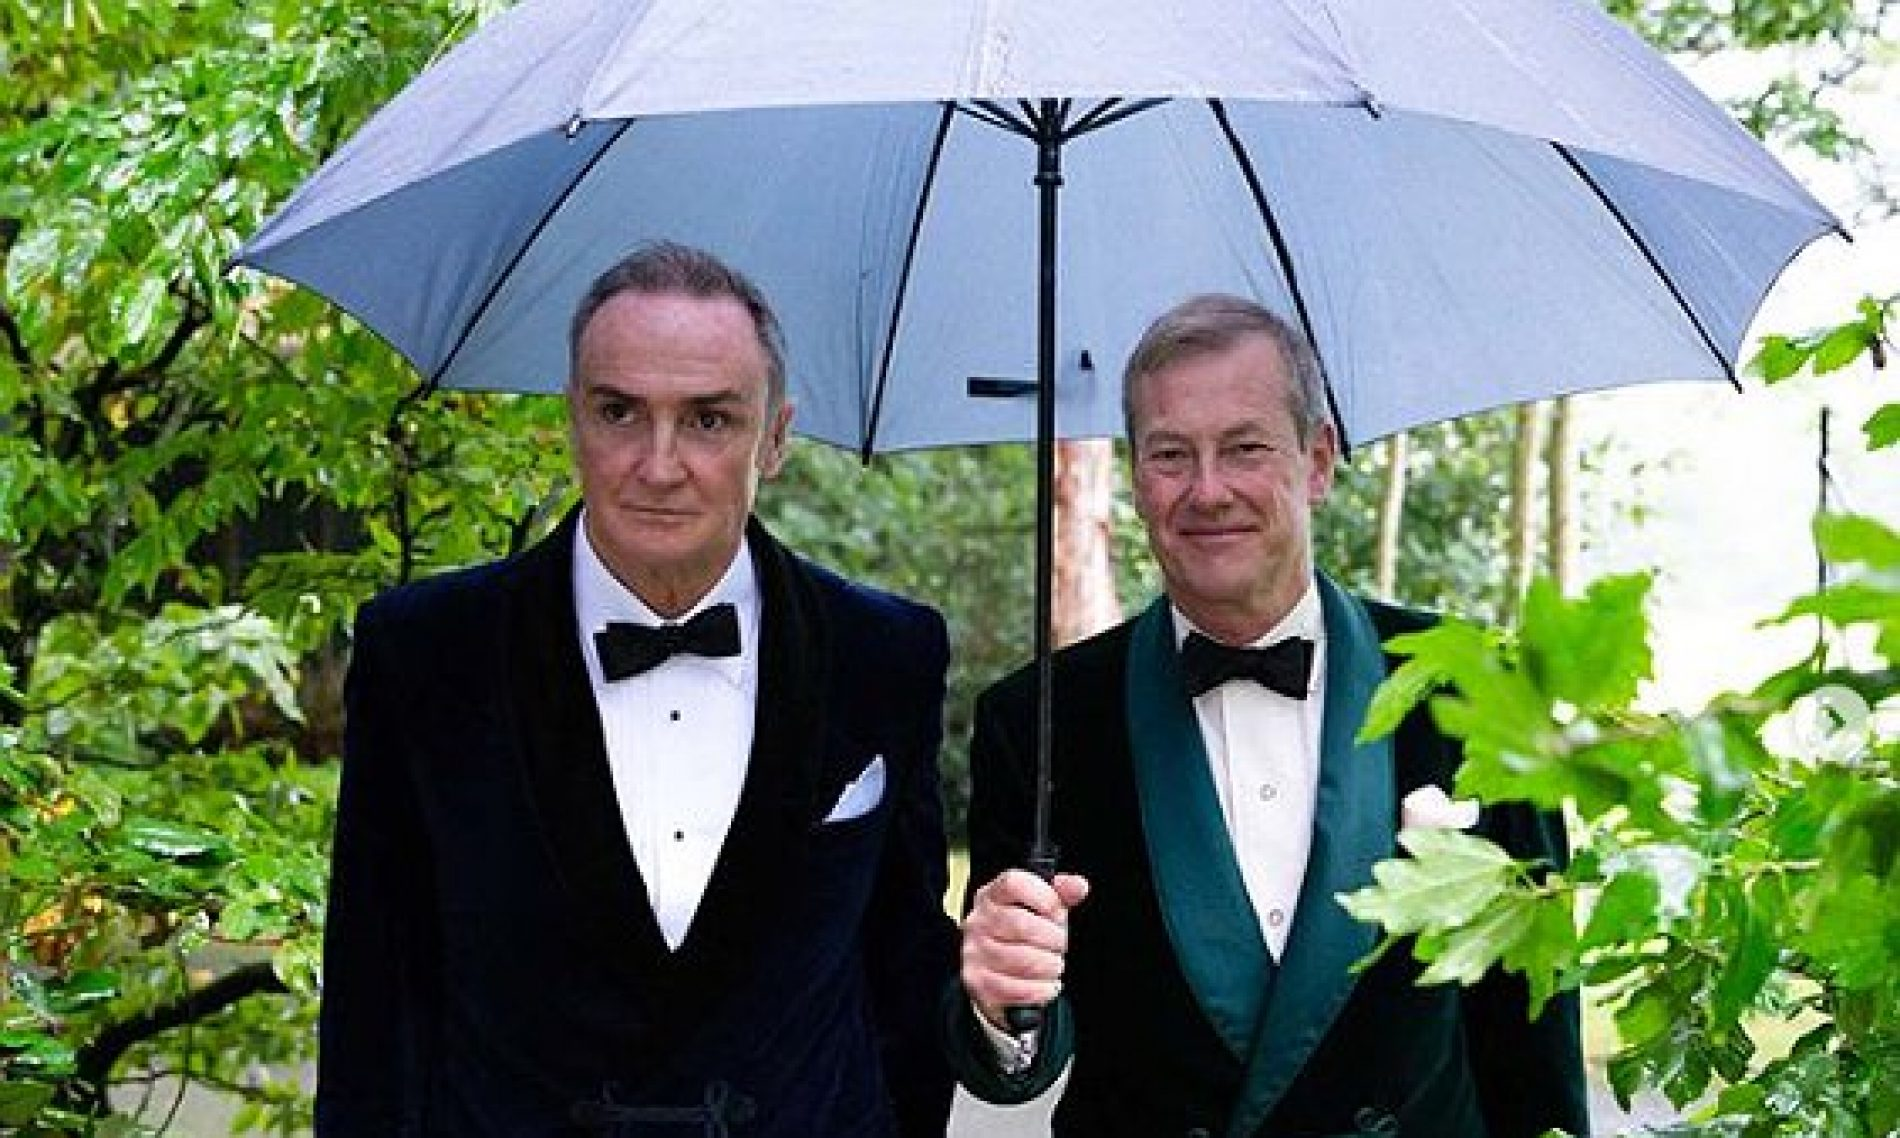 """We Did It Finally."" Newlywed Lord Mountbatten declares following the First Ever Gay Royal Family Wedding"